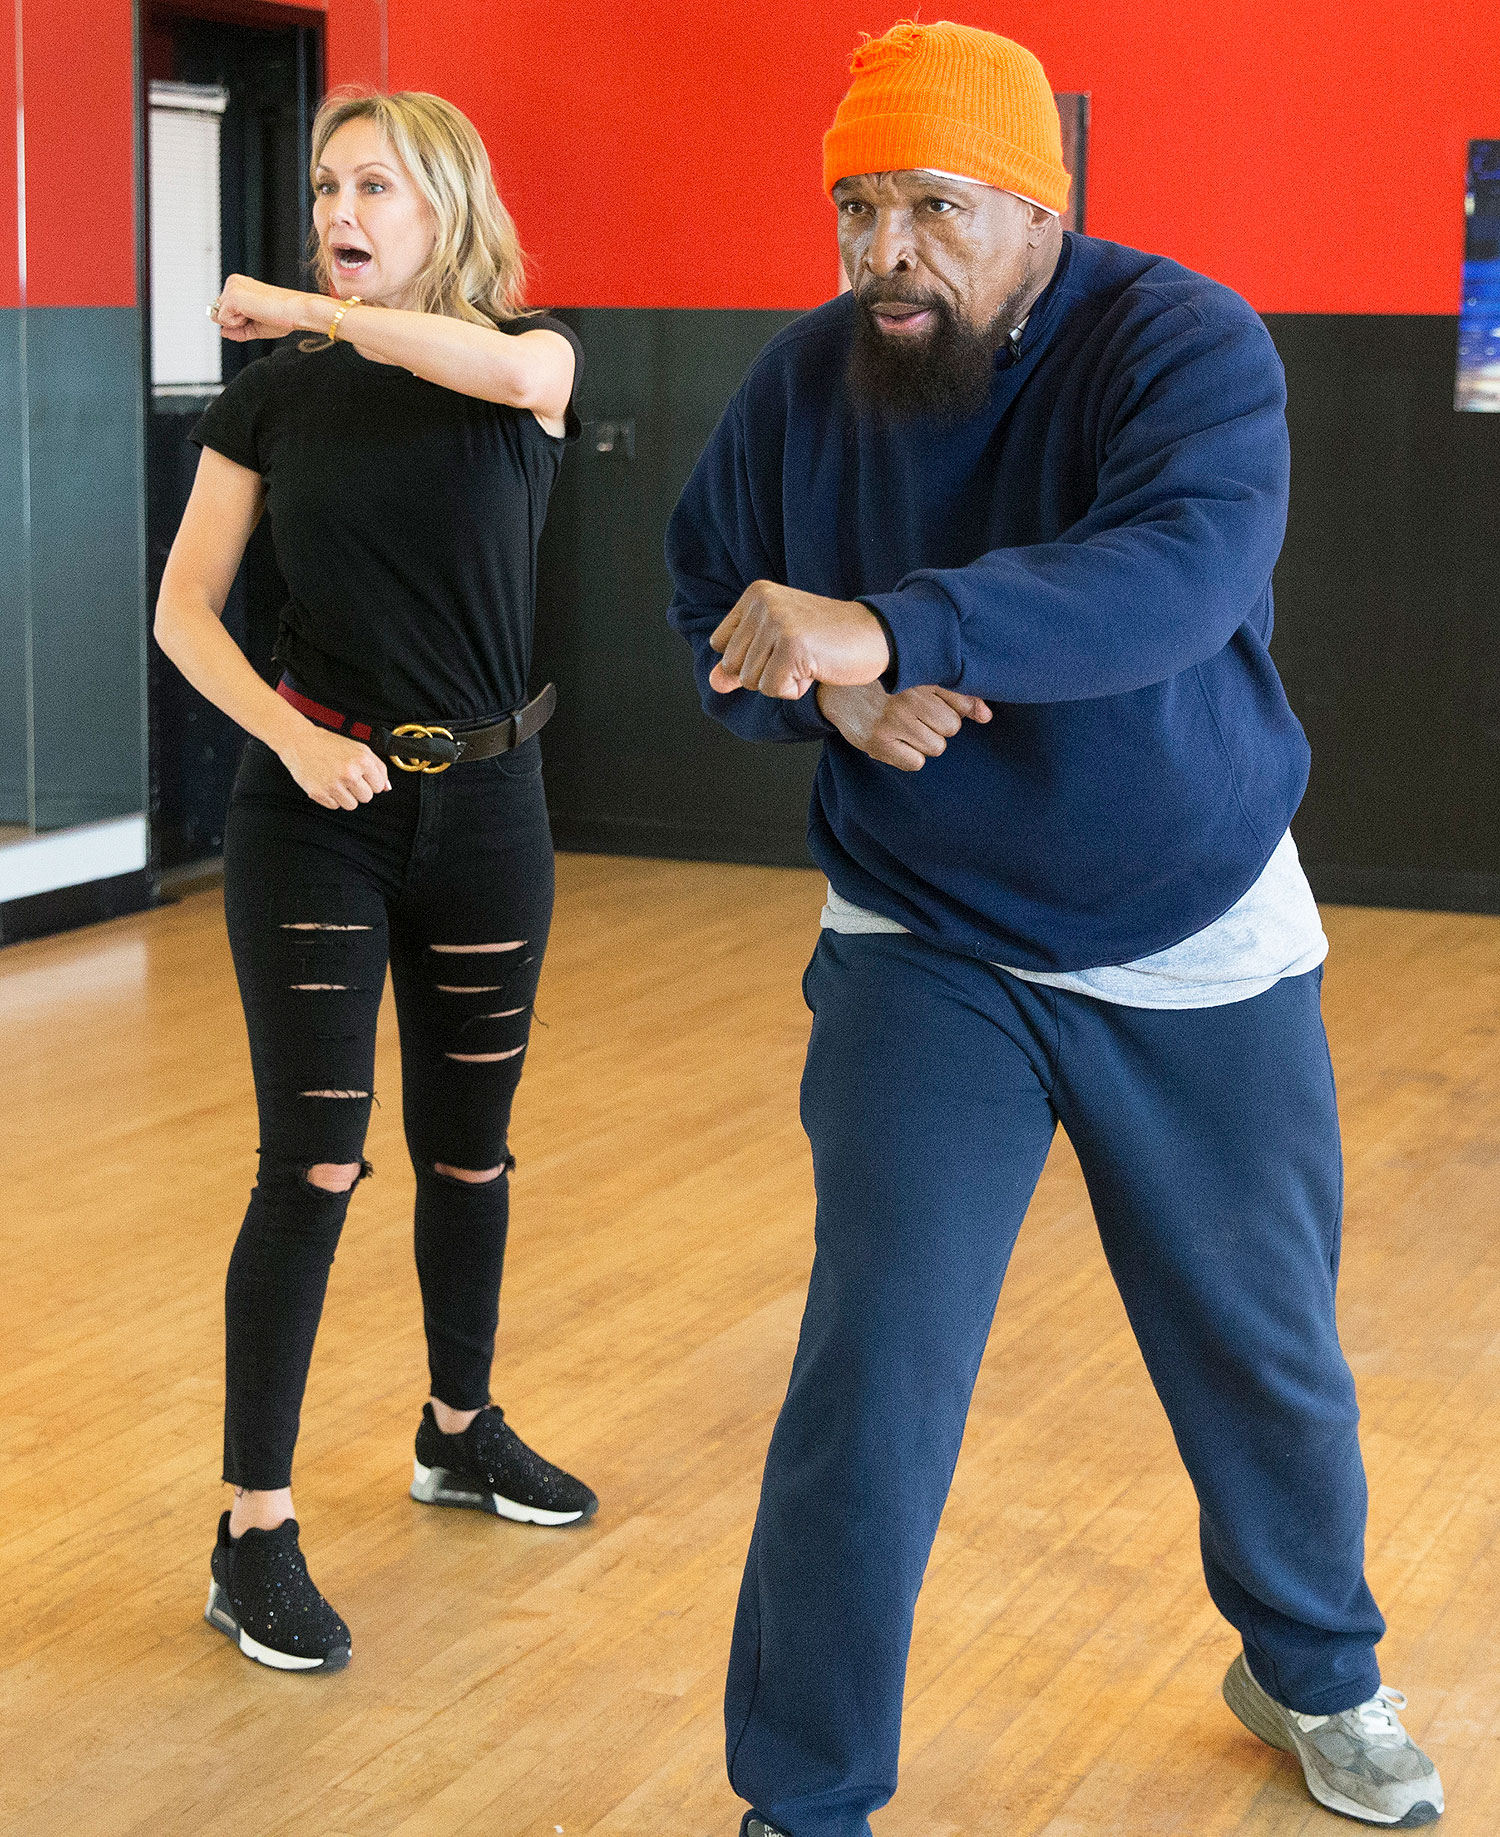 KYM JOHNSON, MR. T